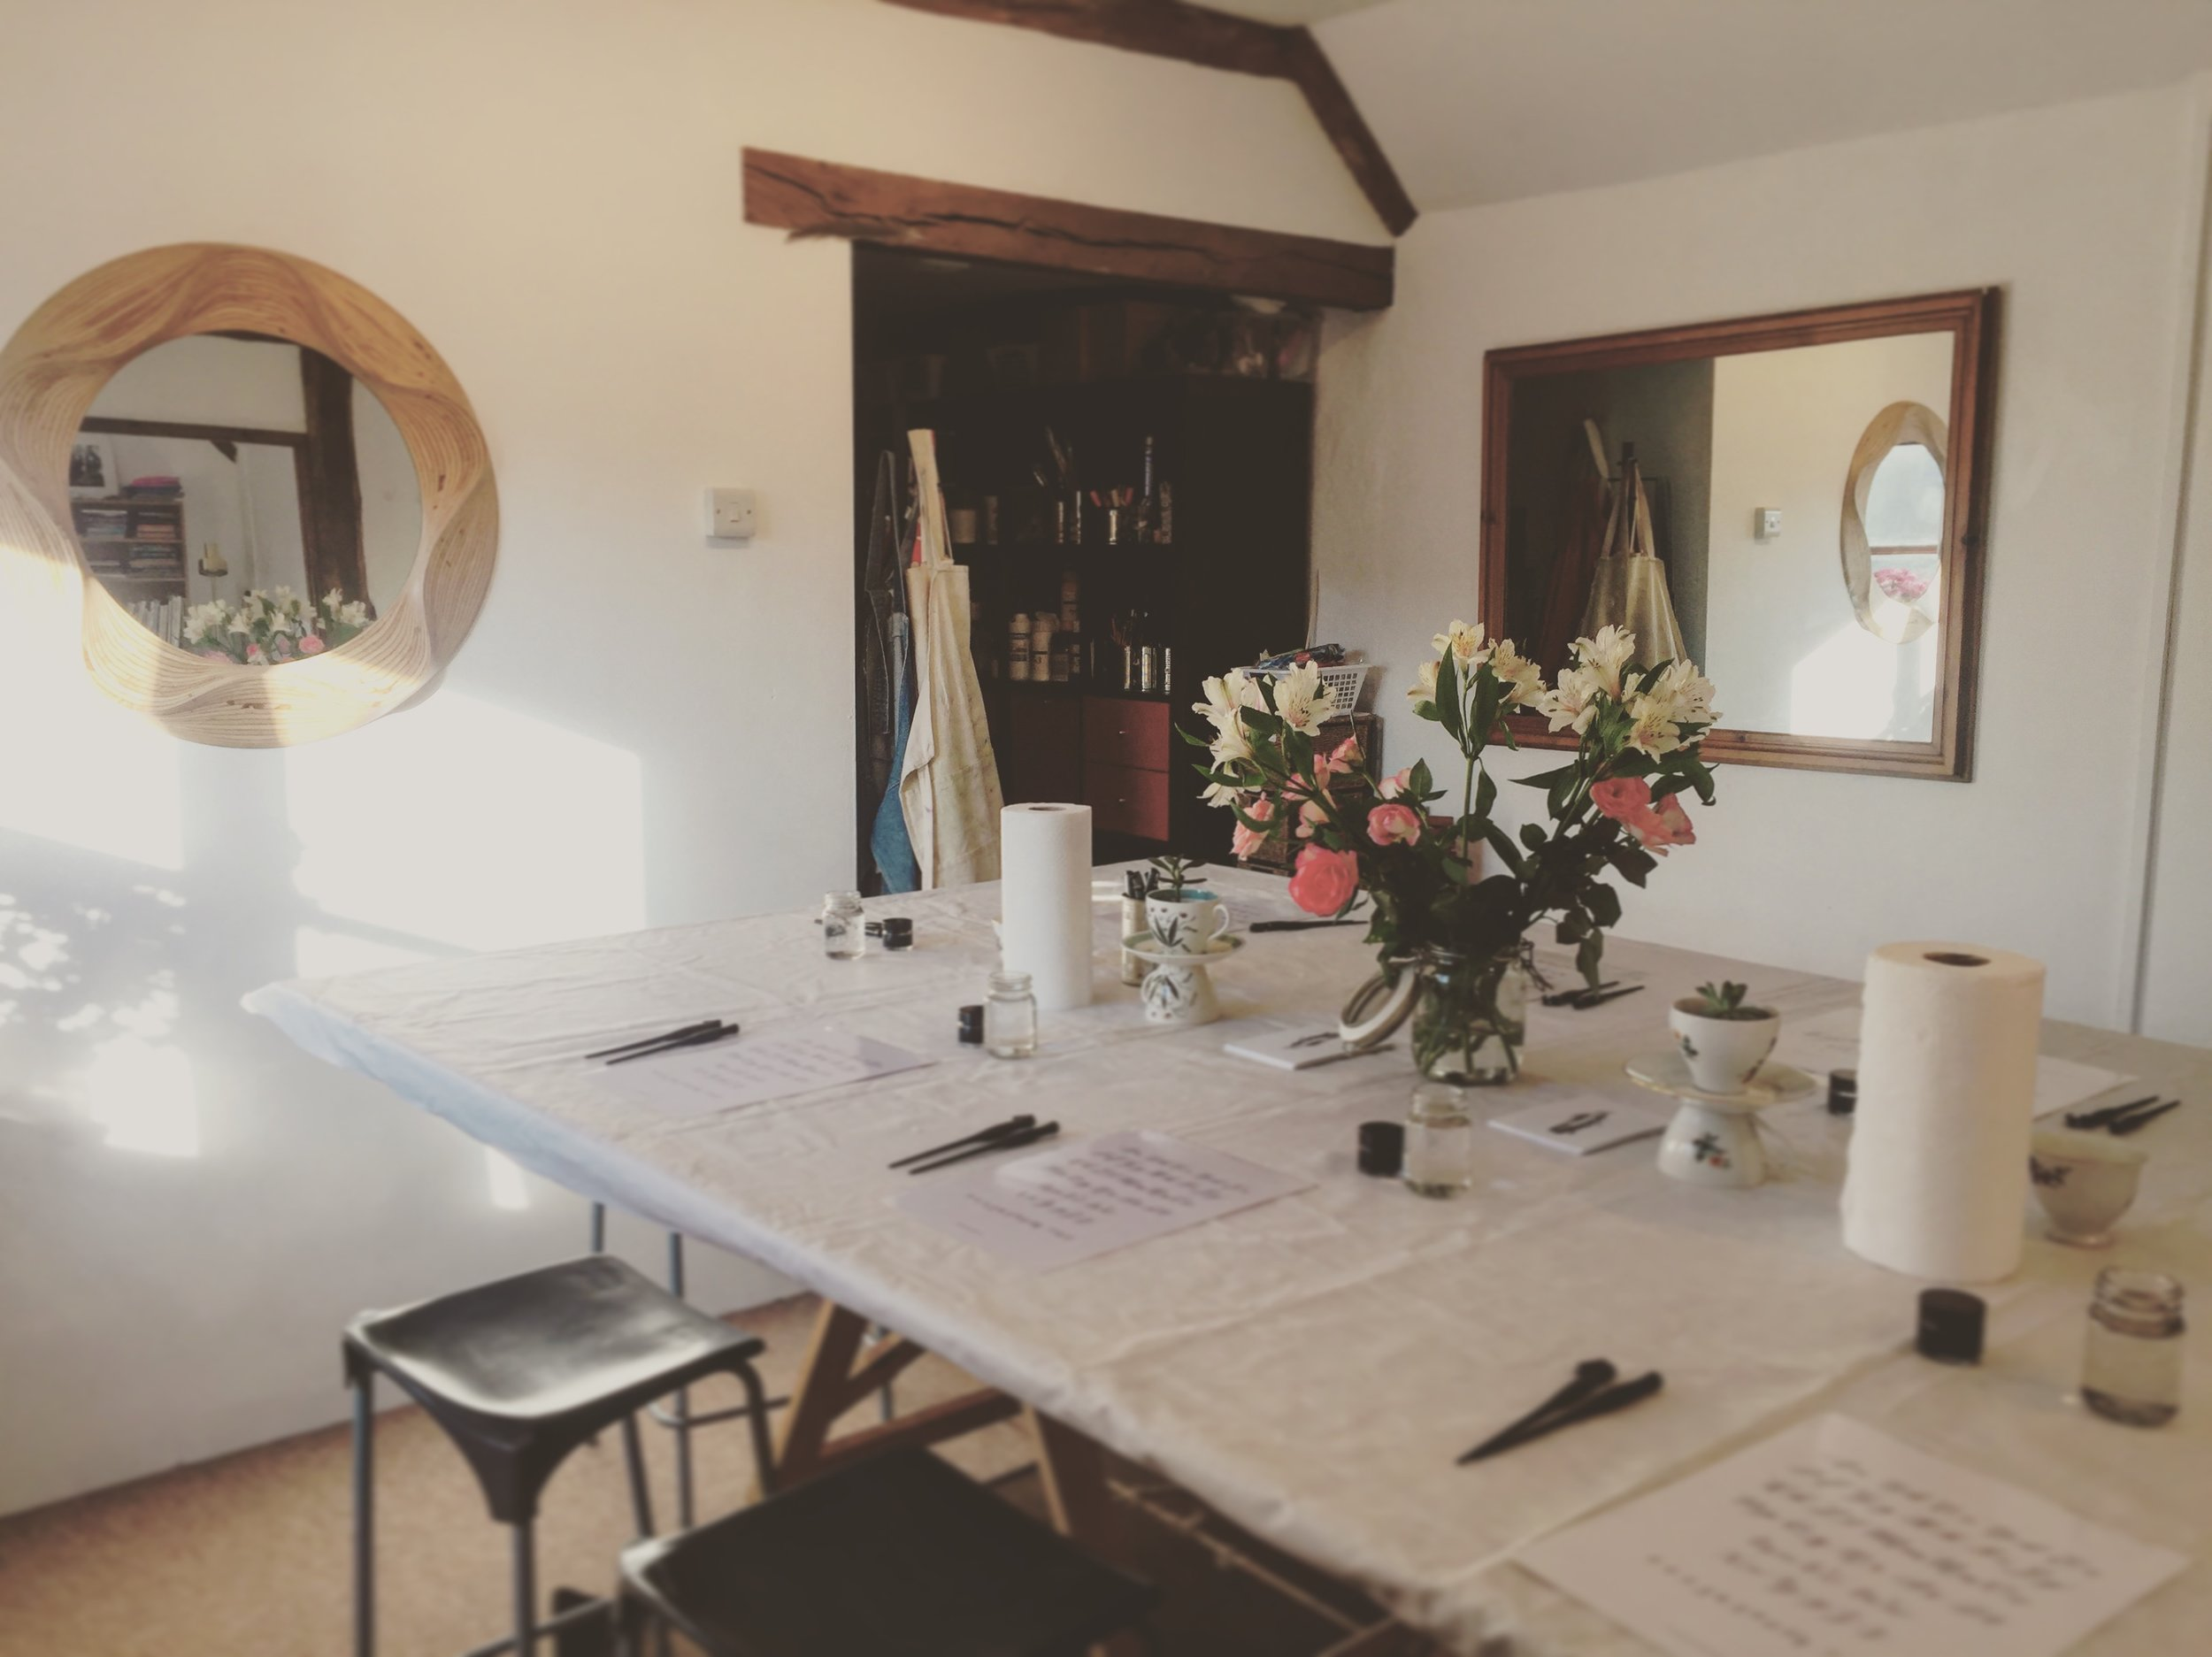 Studio Location:  All workshops take place in our fully equipped studio: The Old Dairy, Dean House Farm, Newdigate, Dorking, RH5 5DL. The studio is located in a beautiful rural setting with  stunning views  and plenty of  free parking  onsite. Contact Ellie: 07861 761 167